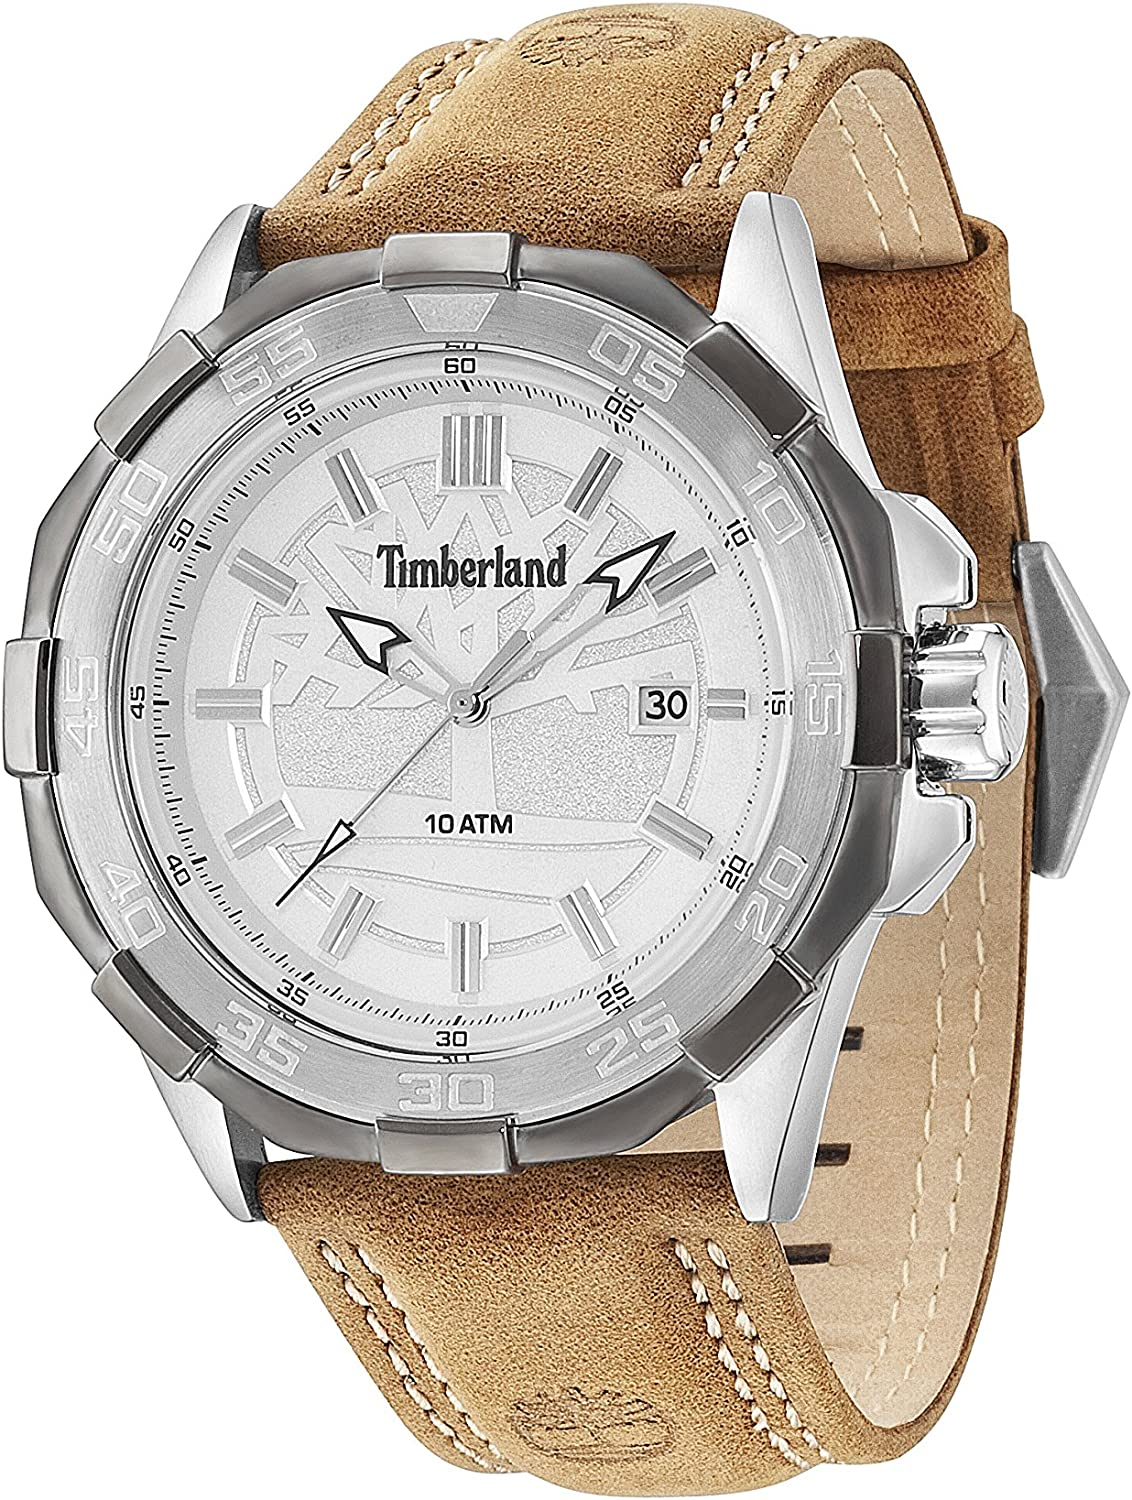 Hassy in secondo luogo Velo  Timberland Men's Quartz Watch with Silver Dial Analogue Display and Beige  Leather Strap 14098JSTU/04: Amazon.co.uk: Watches